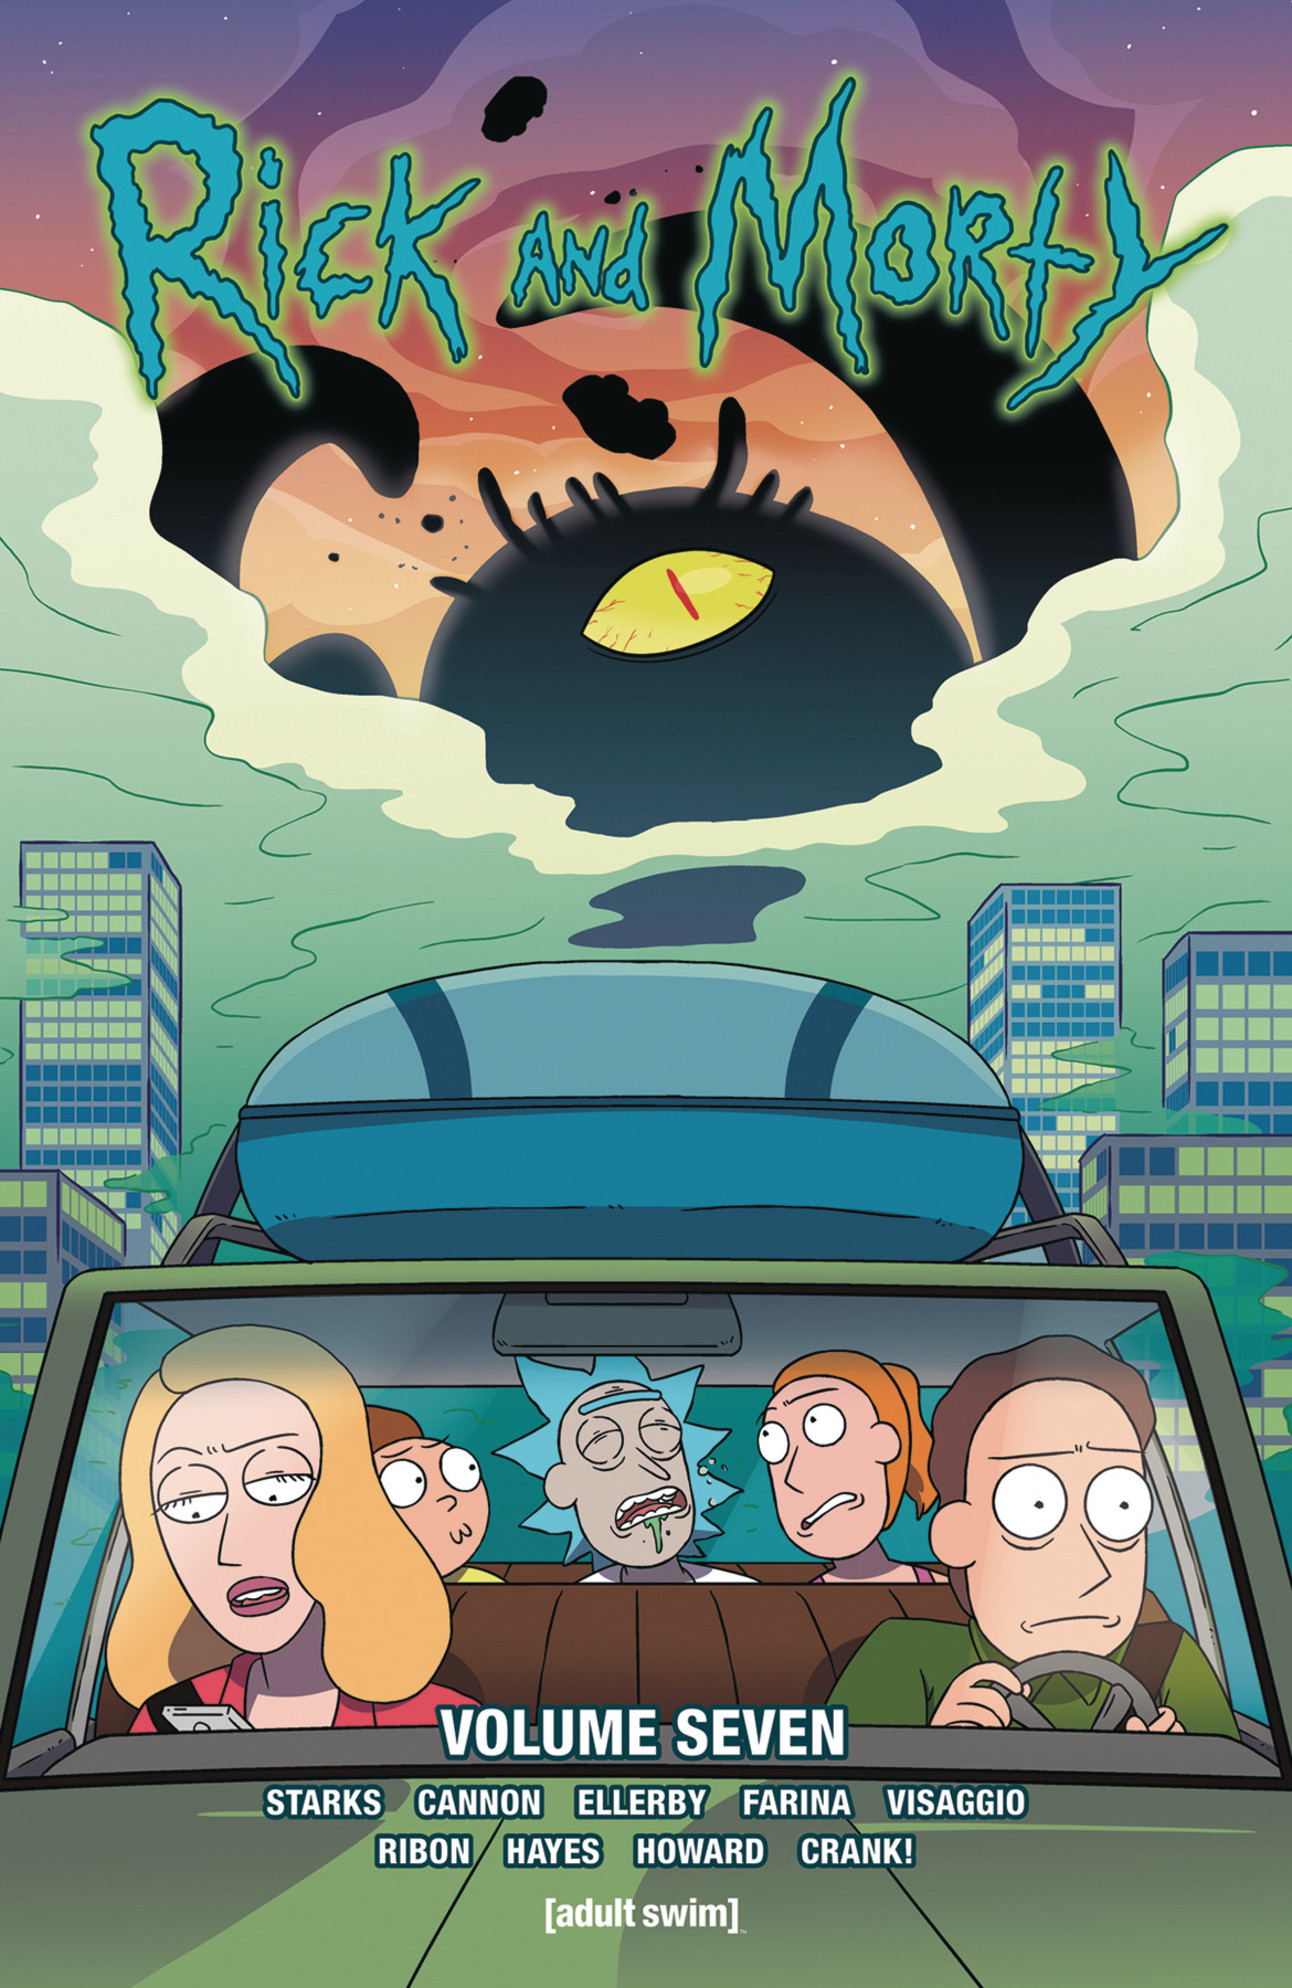 oni_rick_and_morty_vol_7_cover.jpg